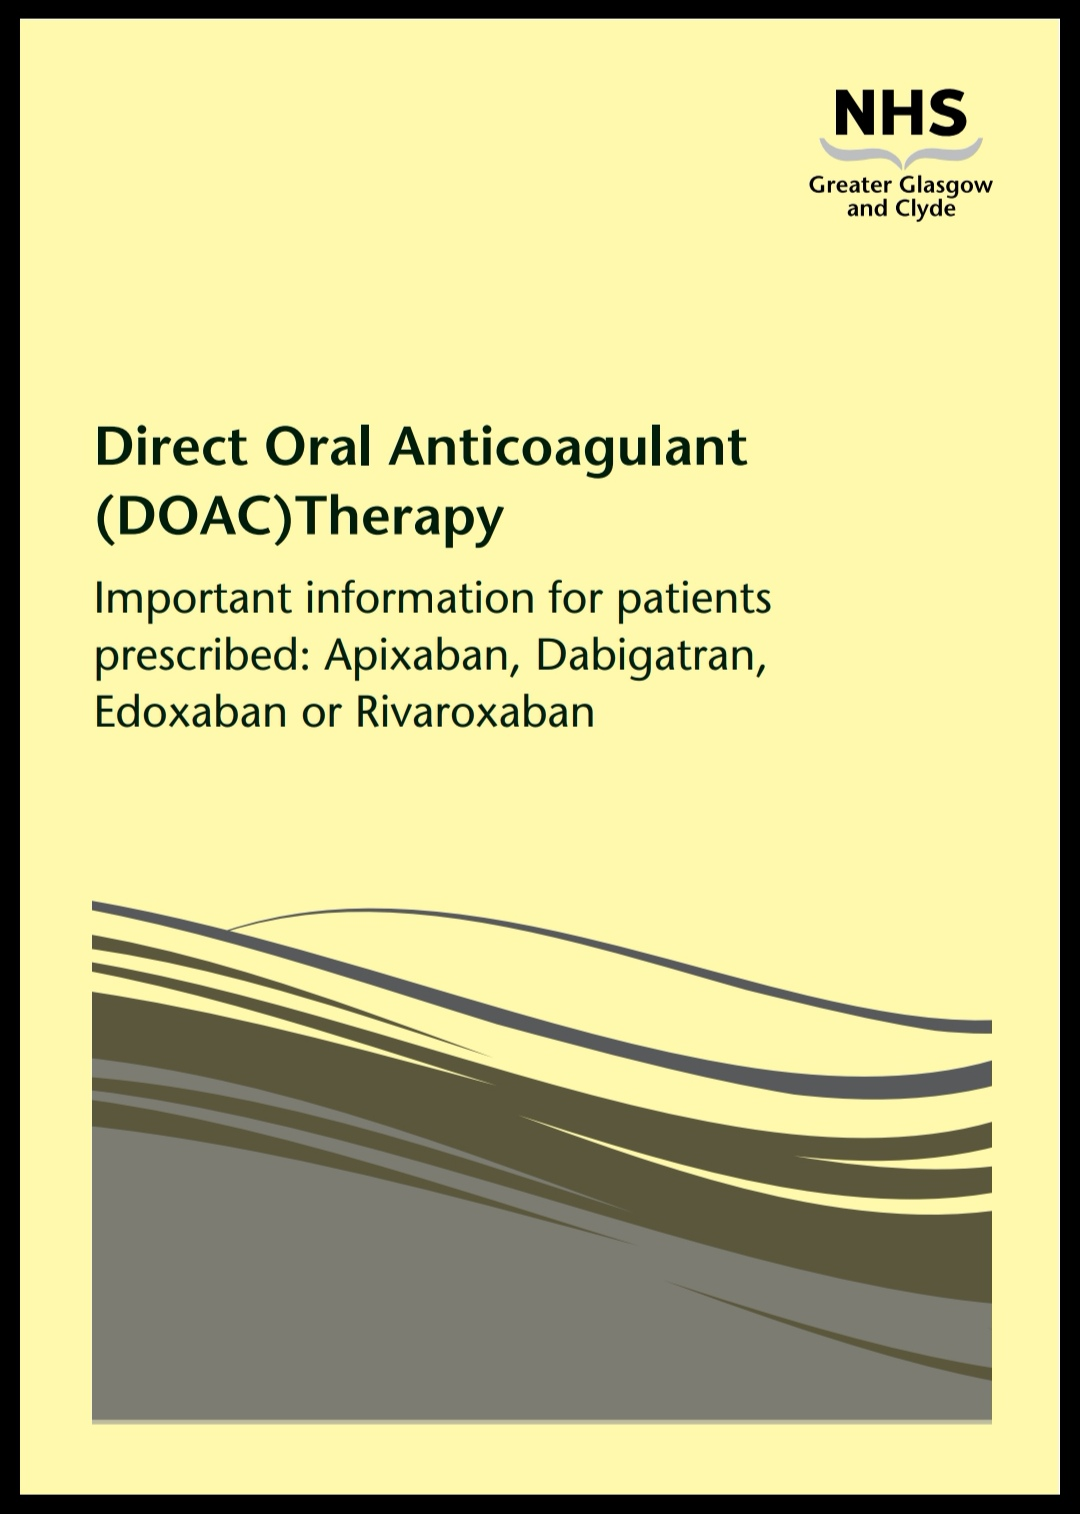 Image of front cover of the new NHSGGC DOAC booklet